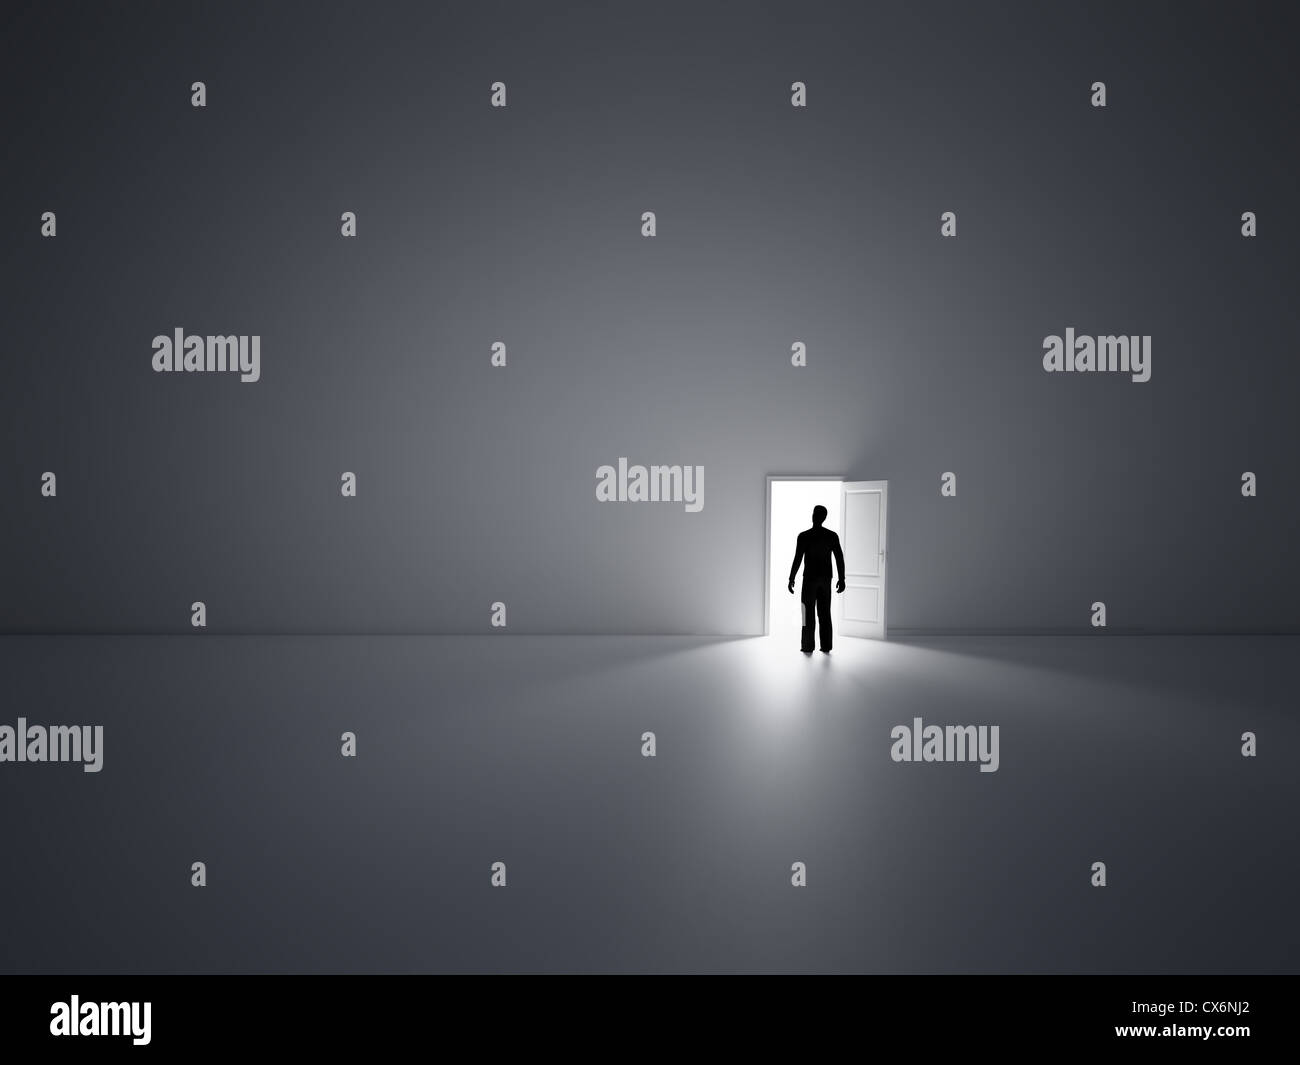 Tiny person walking into open doors - Stock Image